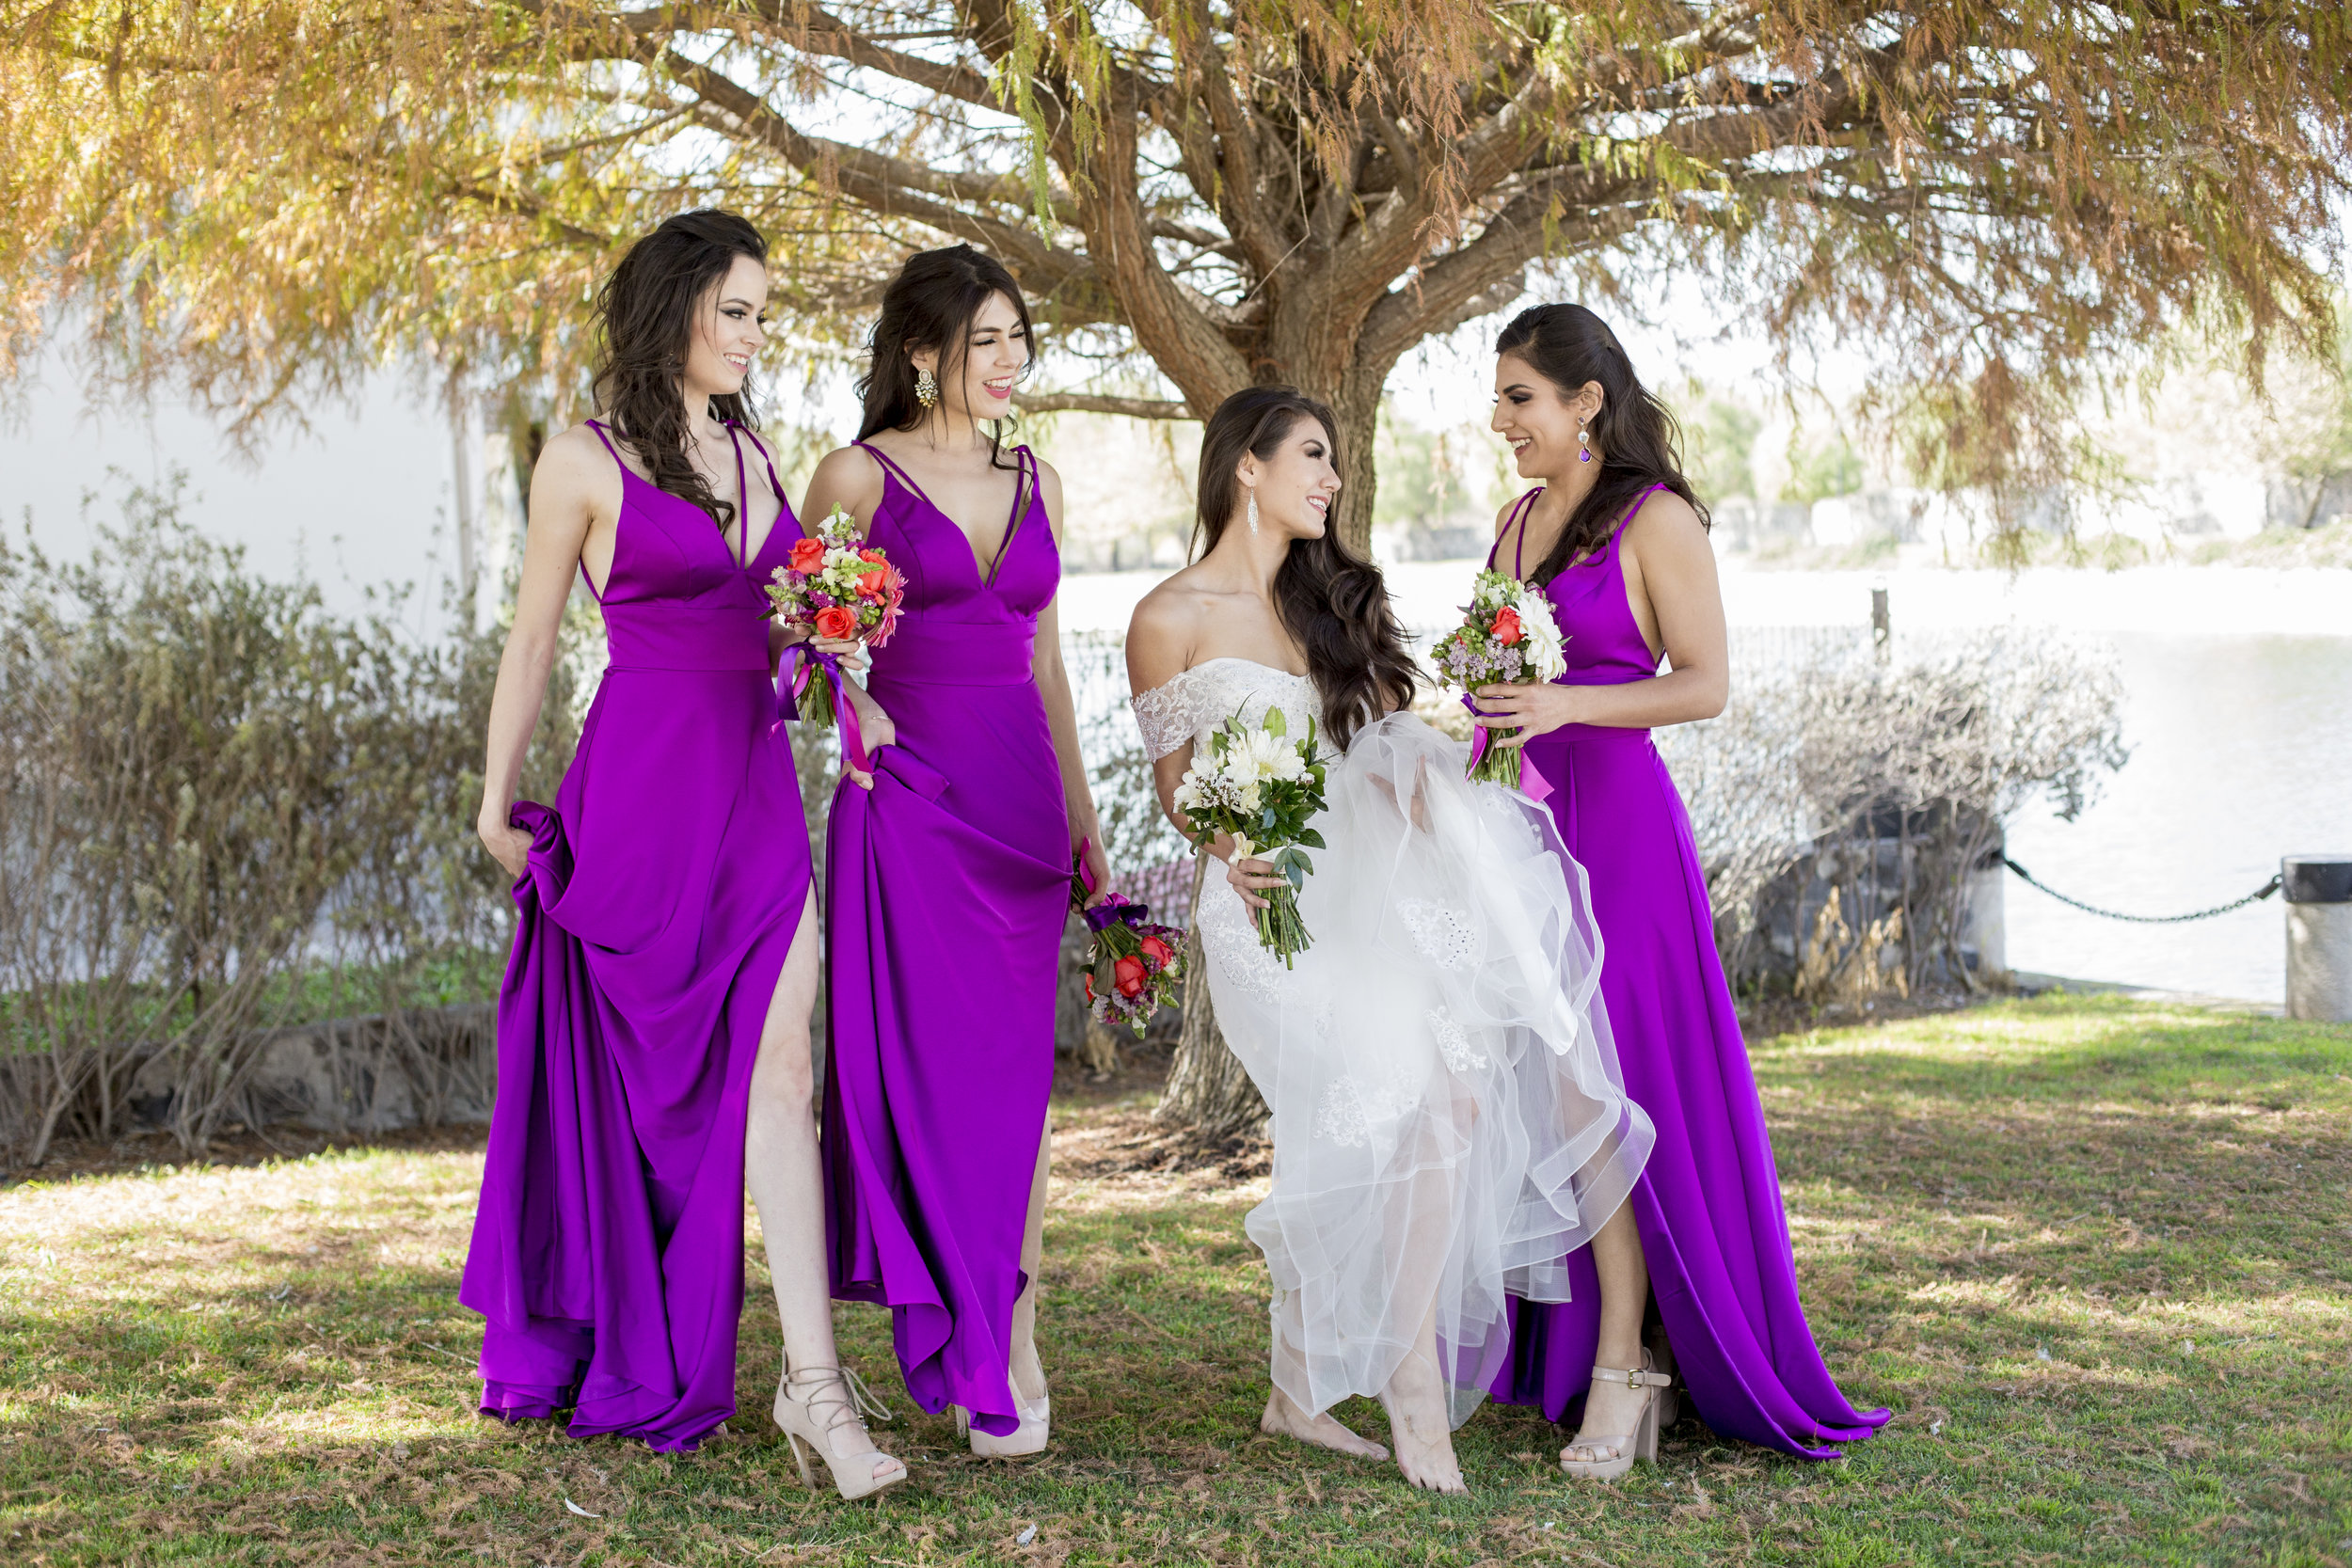 BRIDESMAIDS / NOVIA Y DAMAS DE HONOR